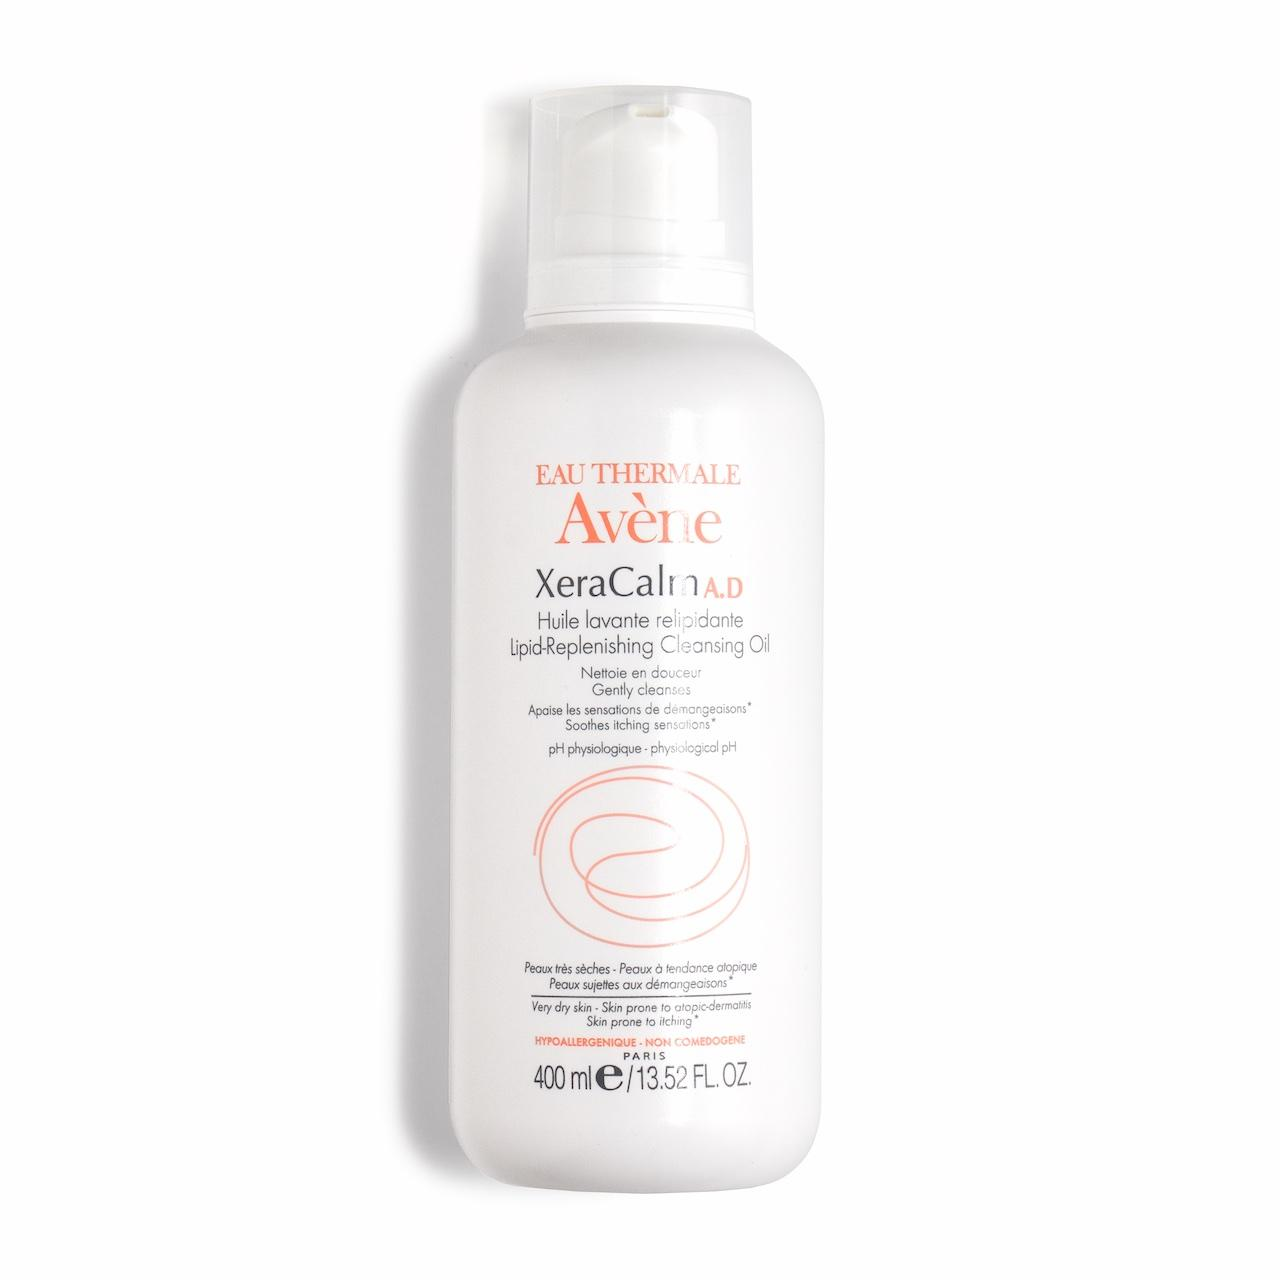 New ReleaseAvene launched New XeraCalm A.D Lipid-Replenishing Cleansing Oil